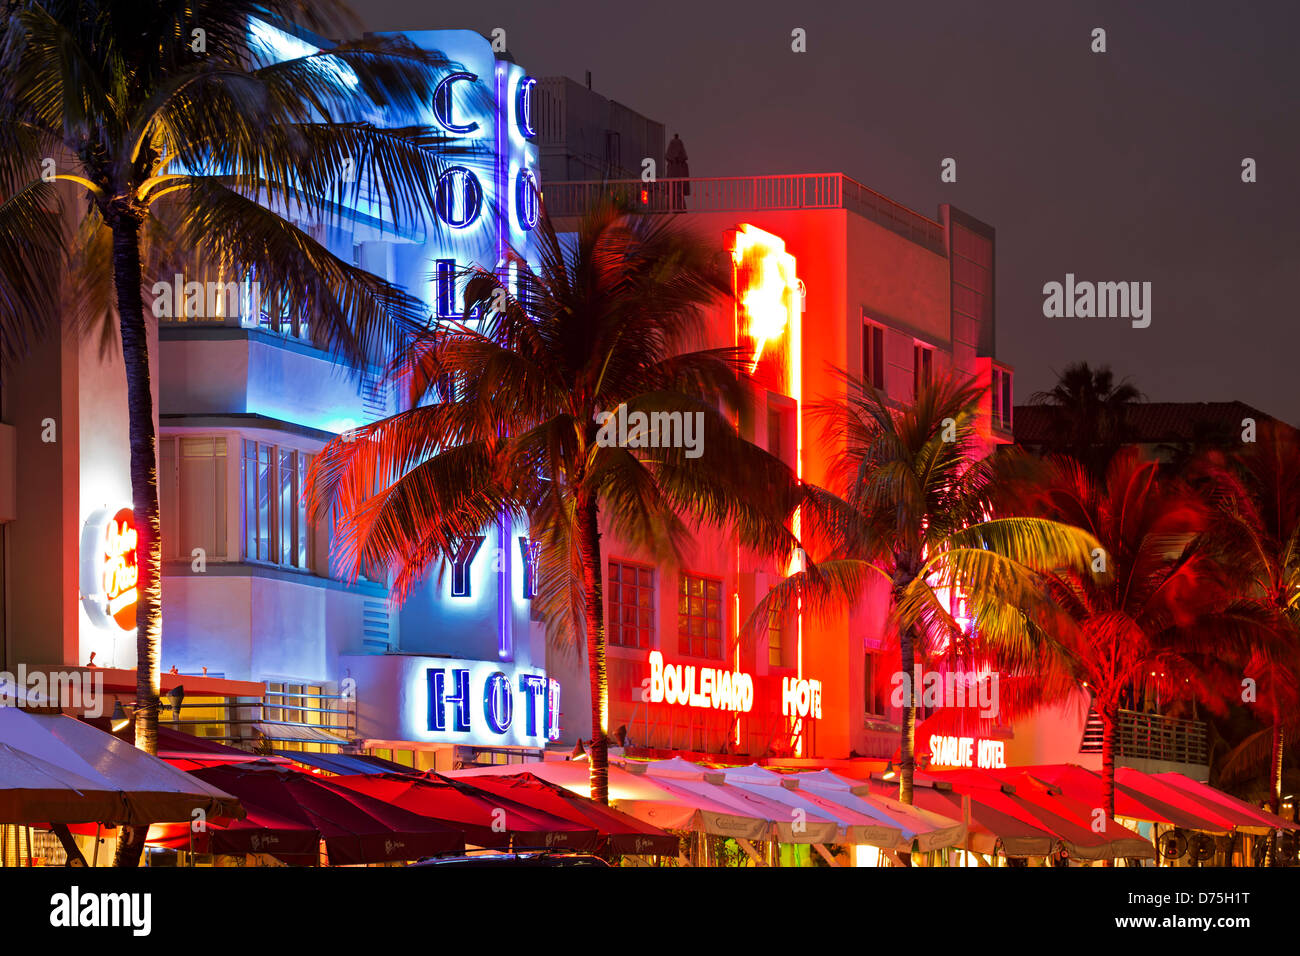 Row of hotels, Colony Hotel, South Beach, Miami Beach, Florida USA - Stock Image